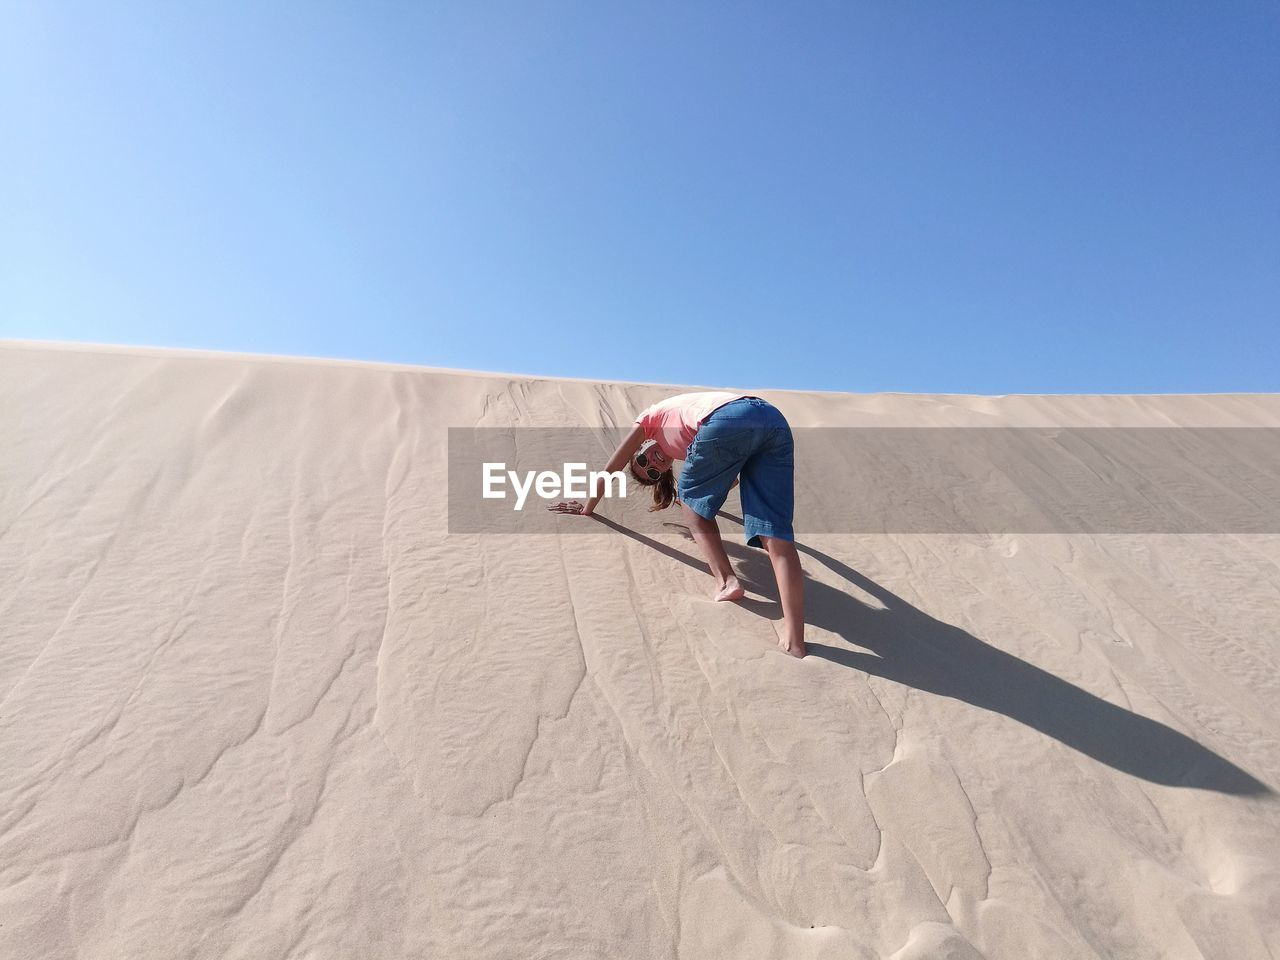 Low angle view of woman on sand dune against clear blue sky